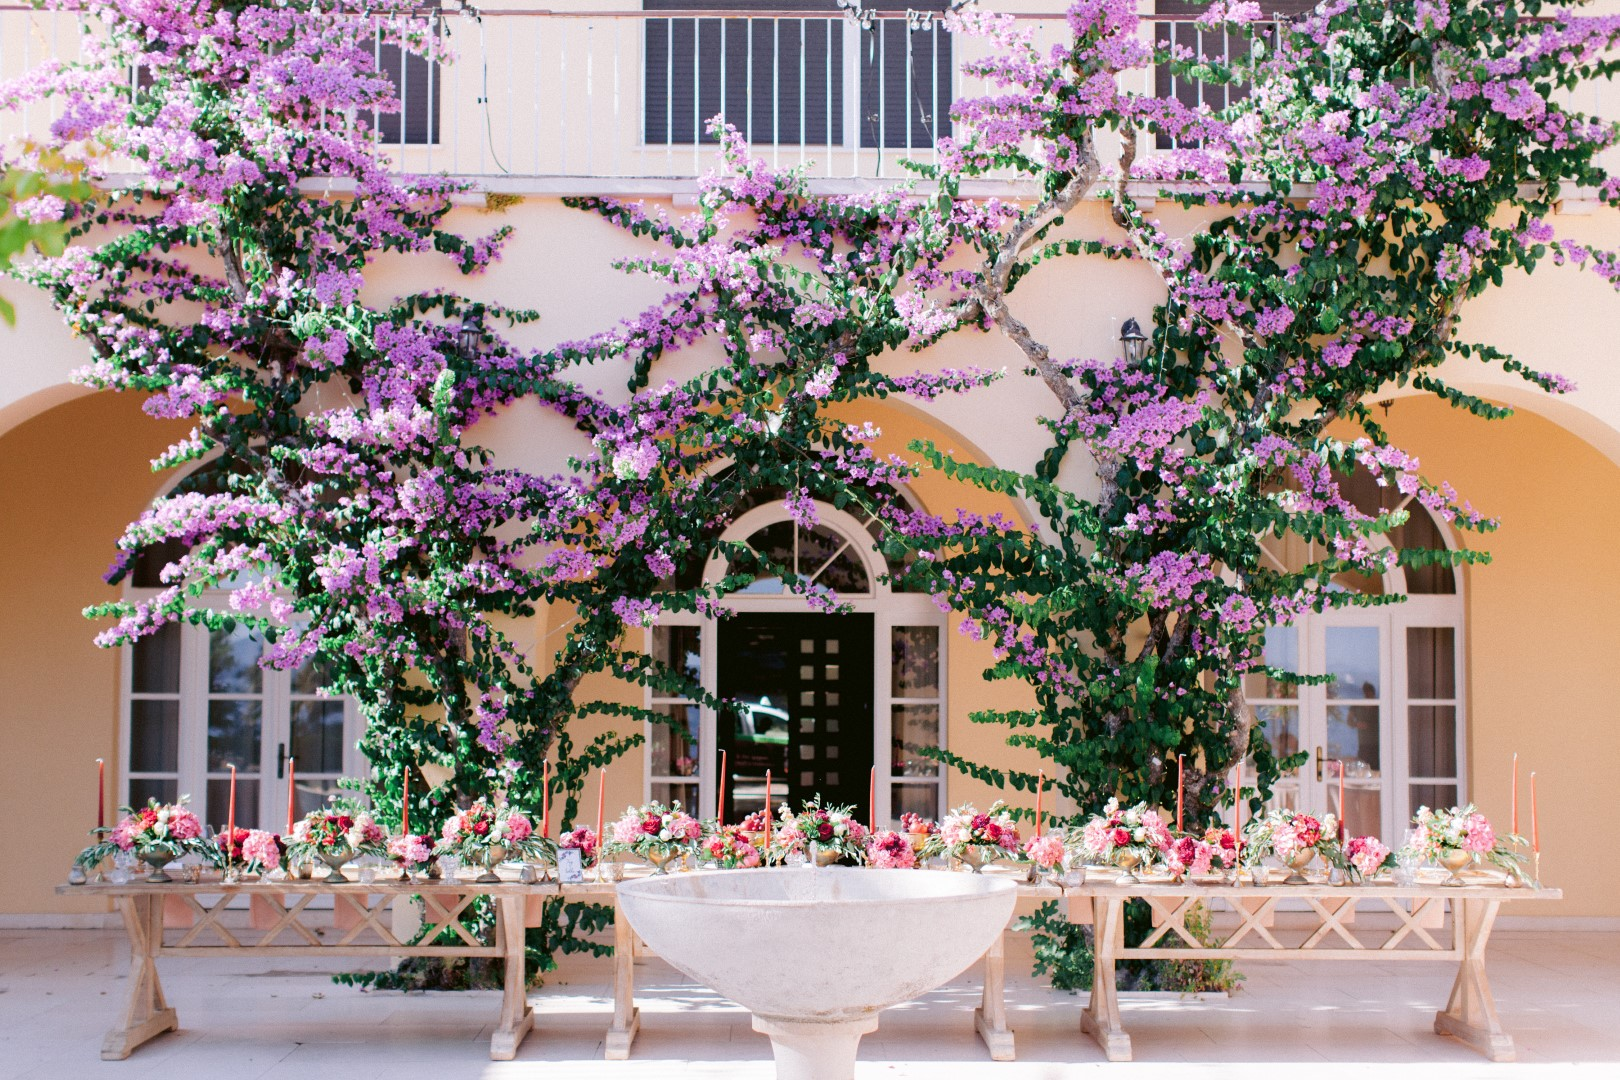 Split Villa Dalmacija wedding reception set up. On this photo is a big rectangular table set up and behind it a huge bougenvilia plant on the wall. The flower arrangements and candles are pink.